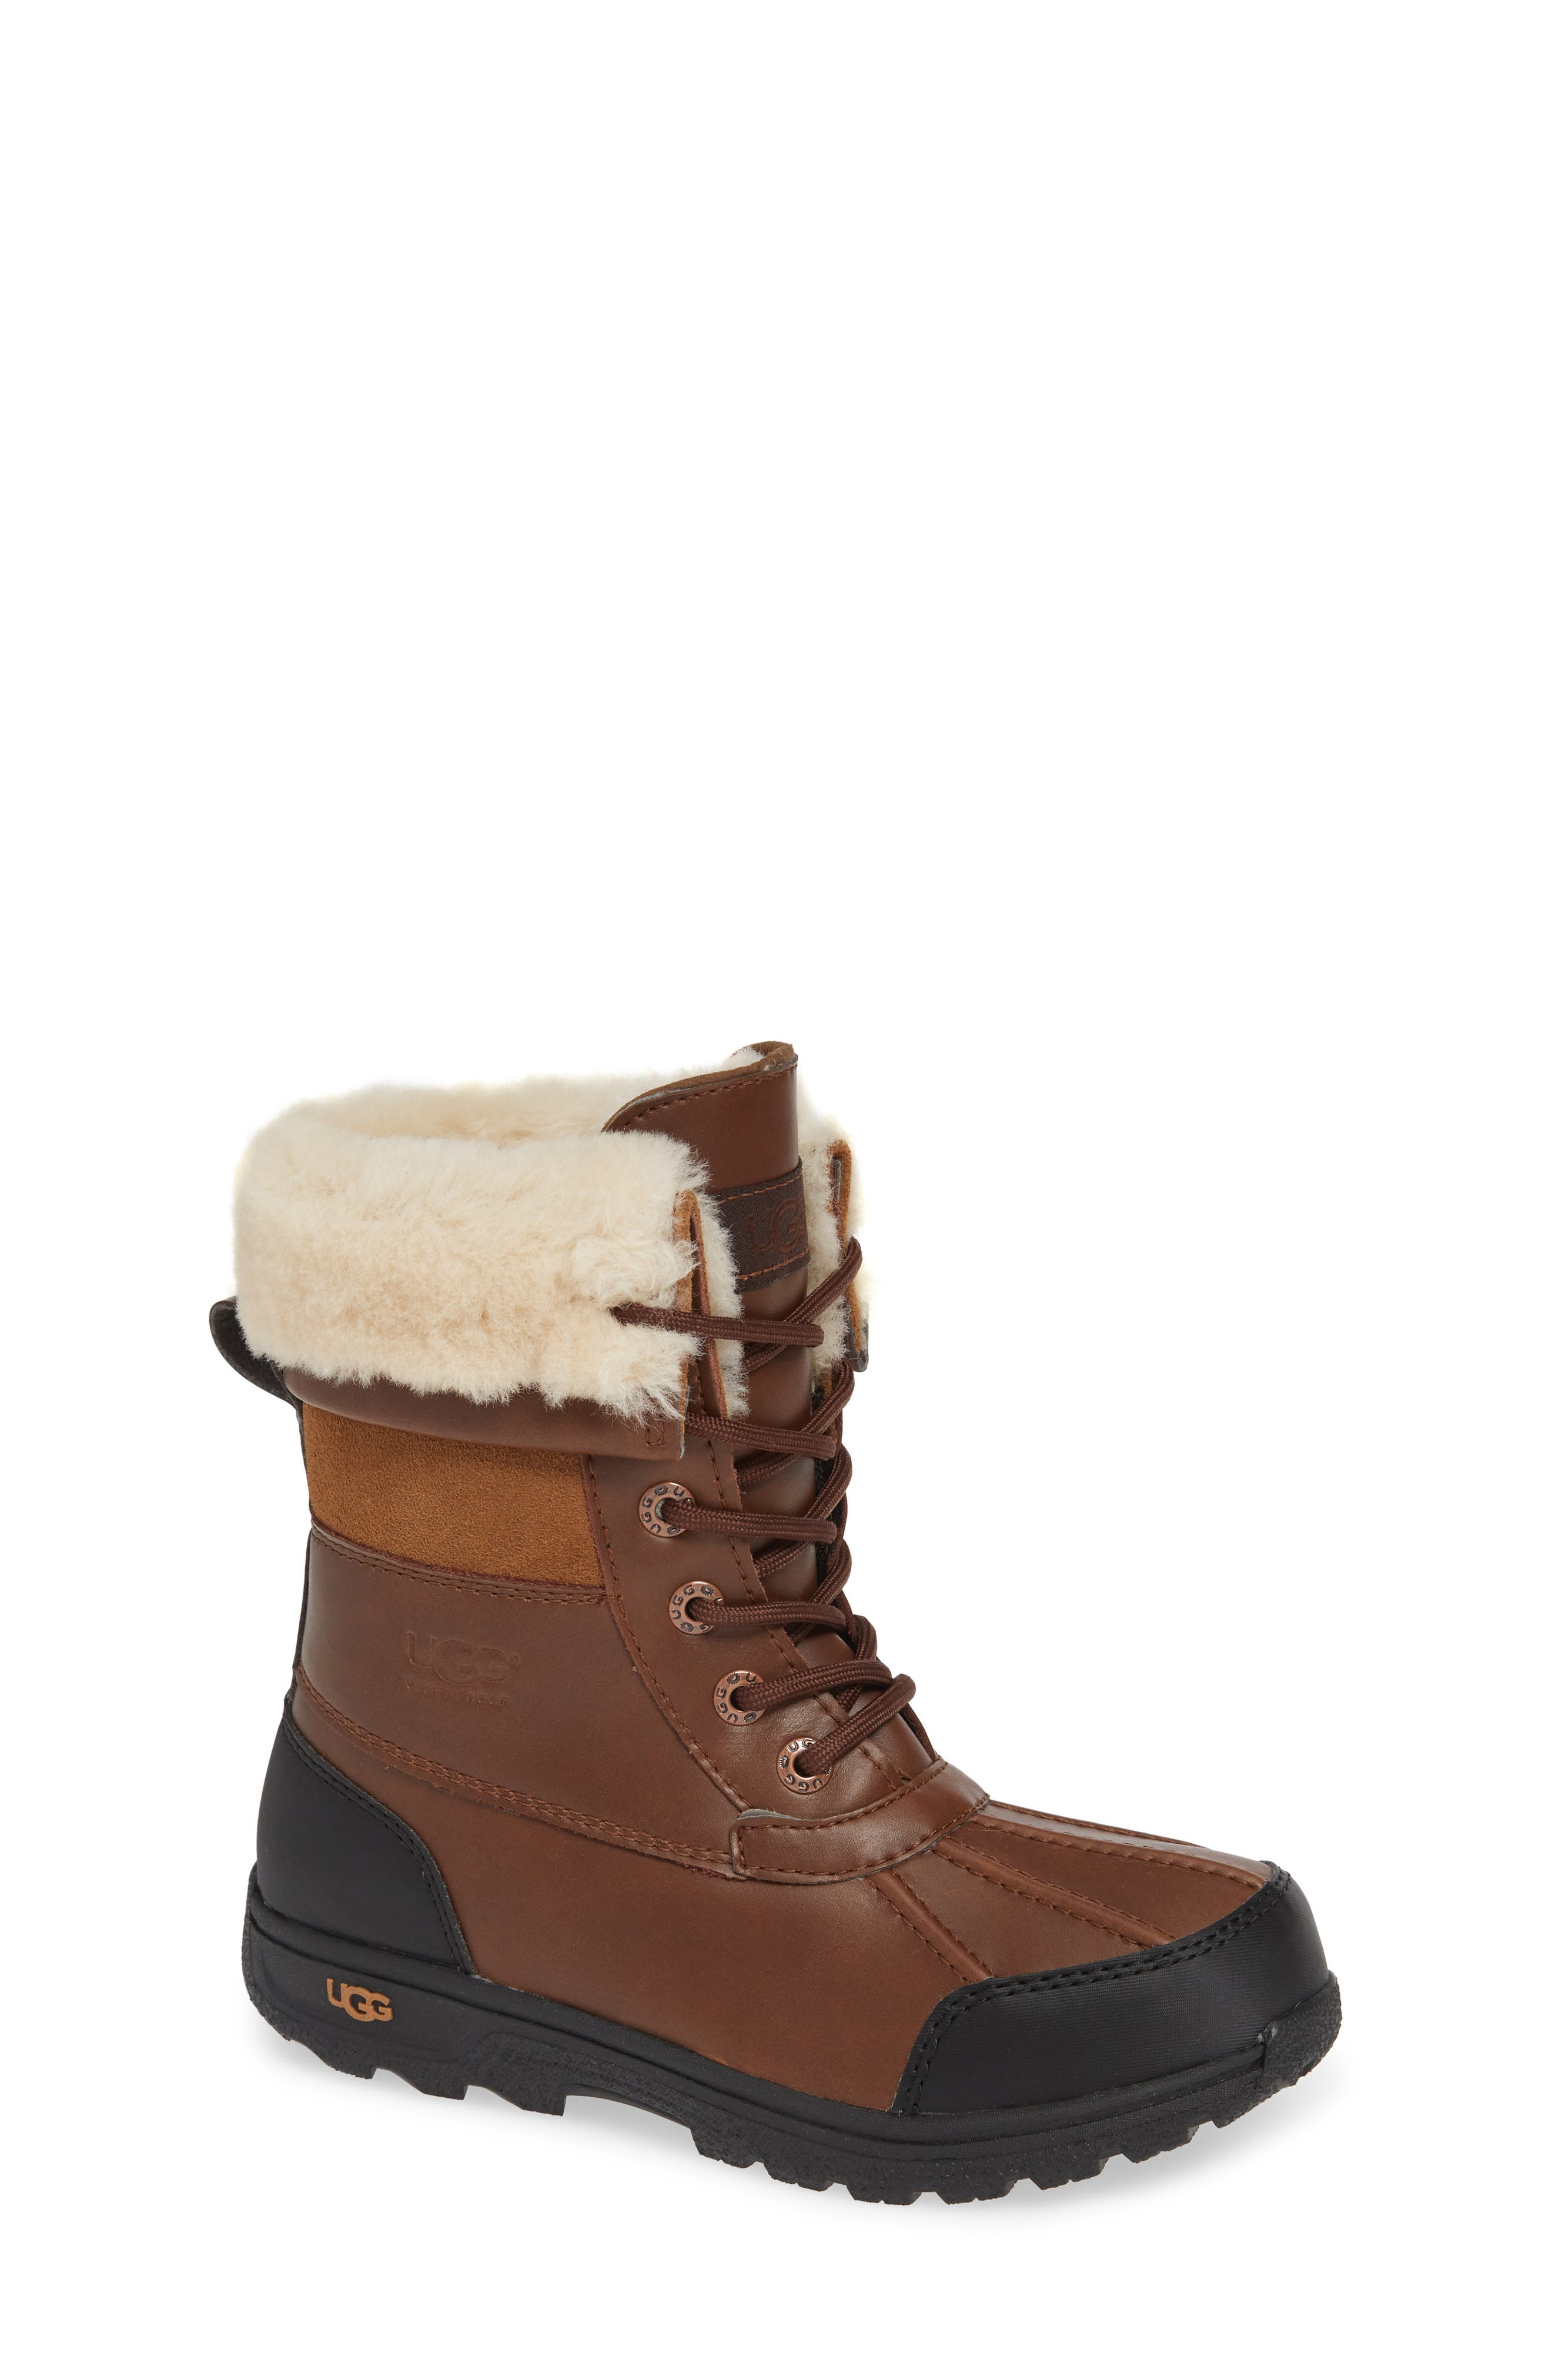 UGG<SUP>®</SUP> Butte II Waterproof Winter Boot, Main, color, WORCHESTER